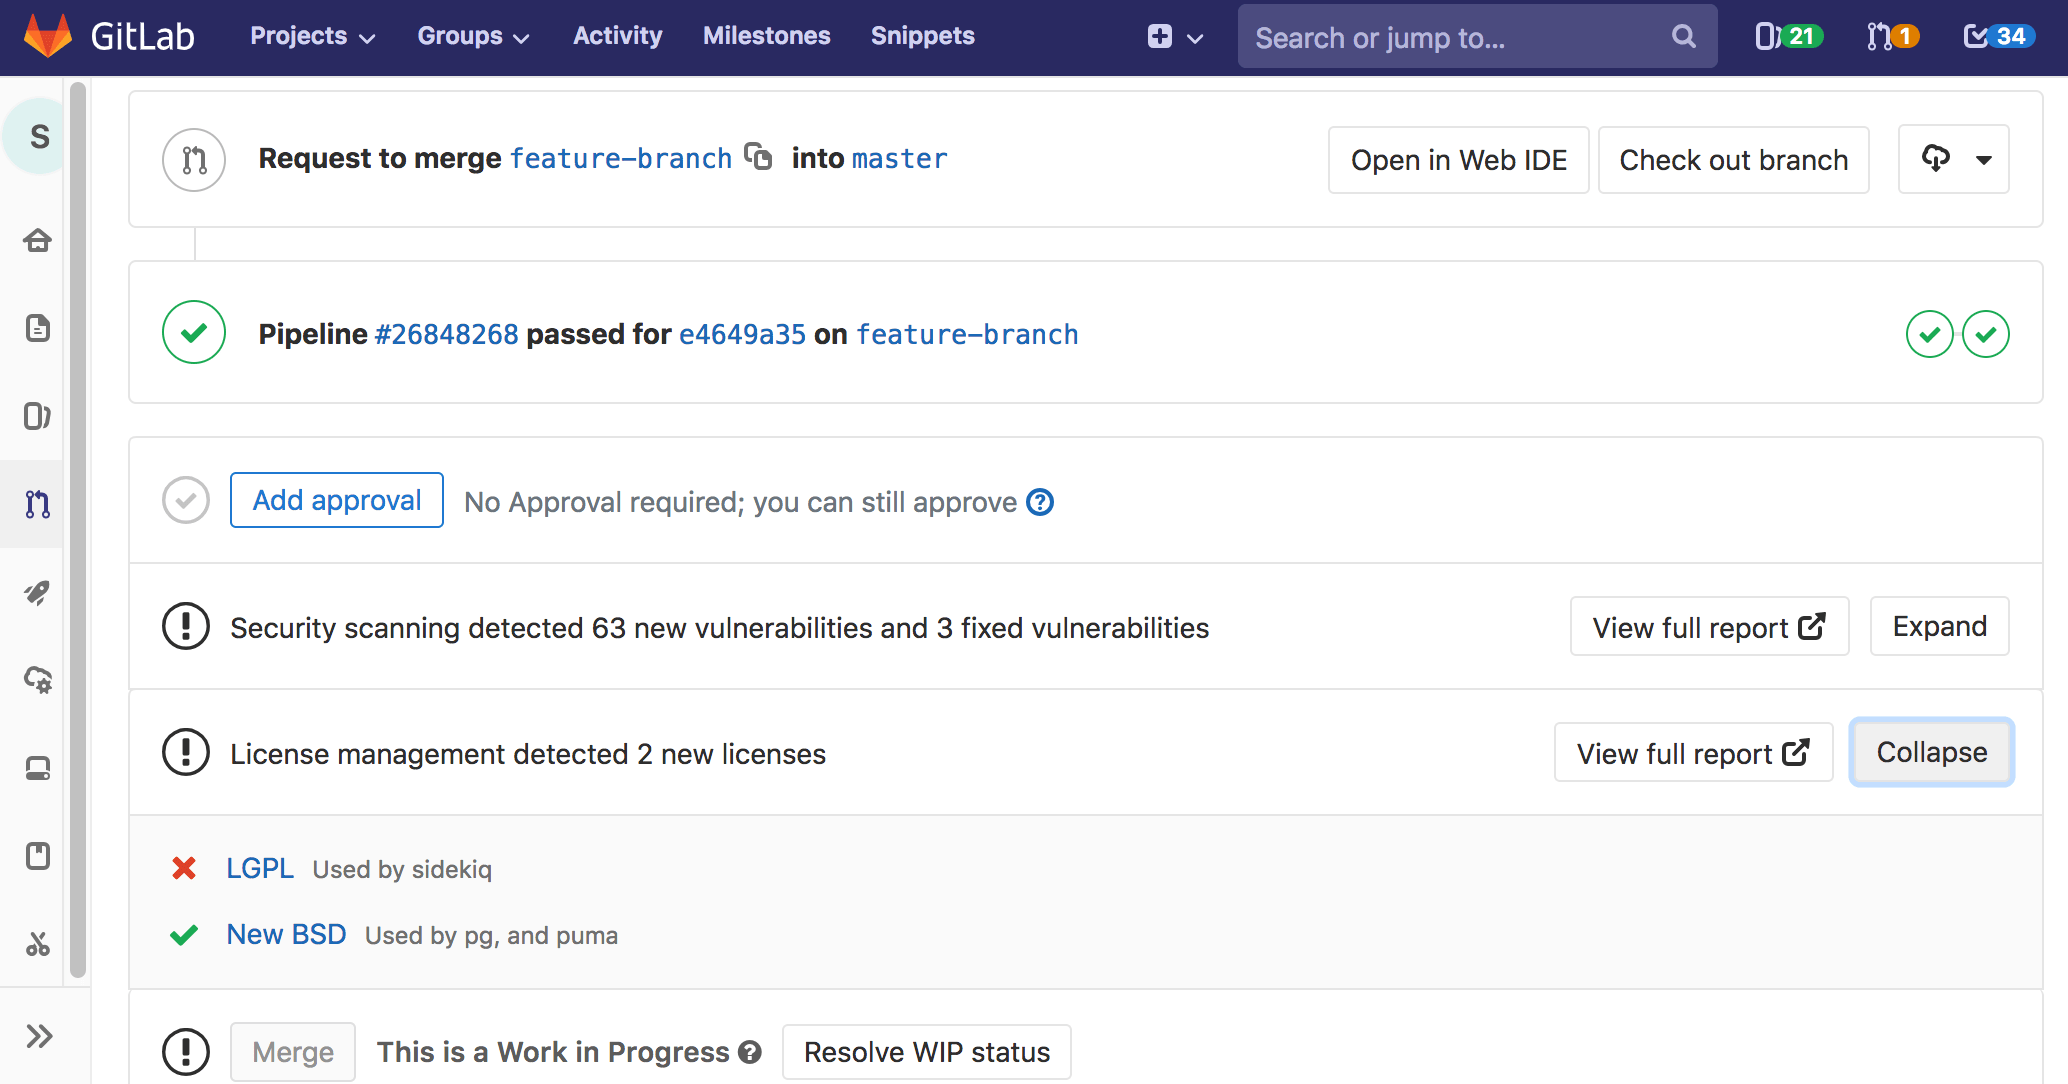 GitLab License Management